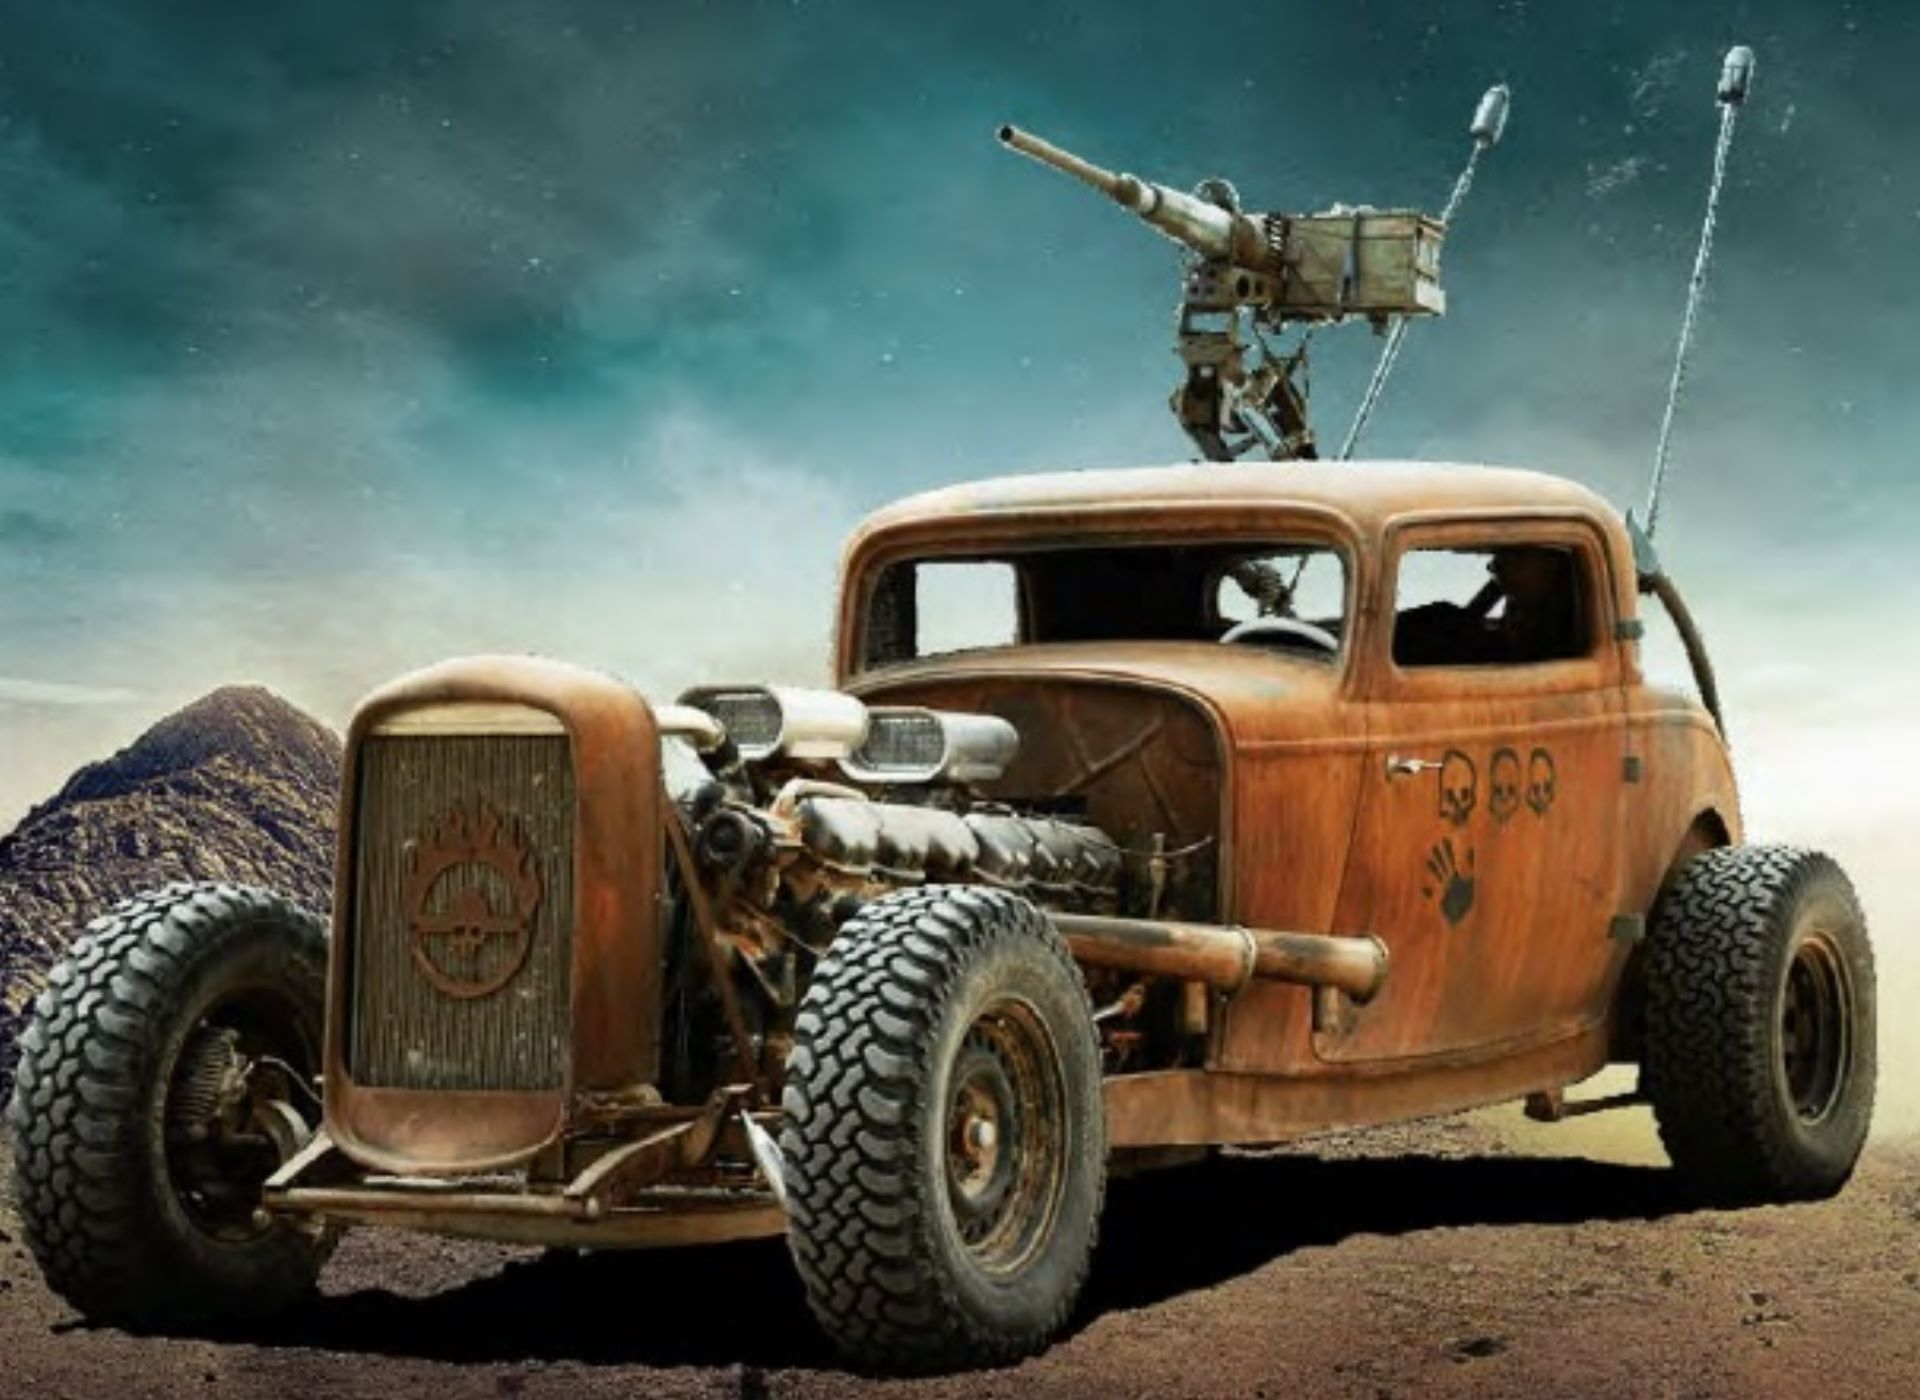 Mad-Max-Fury-Road-cars-for-sale-6